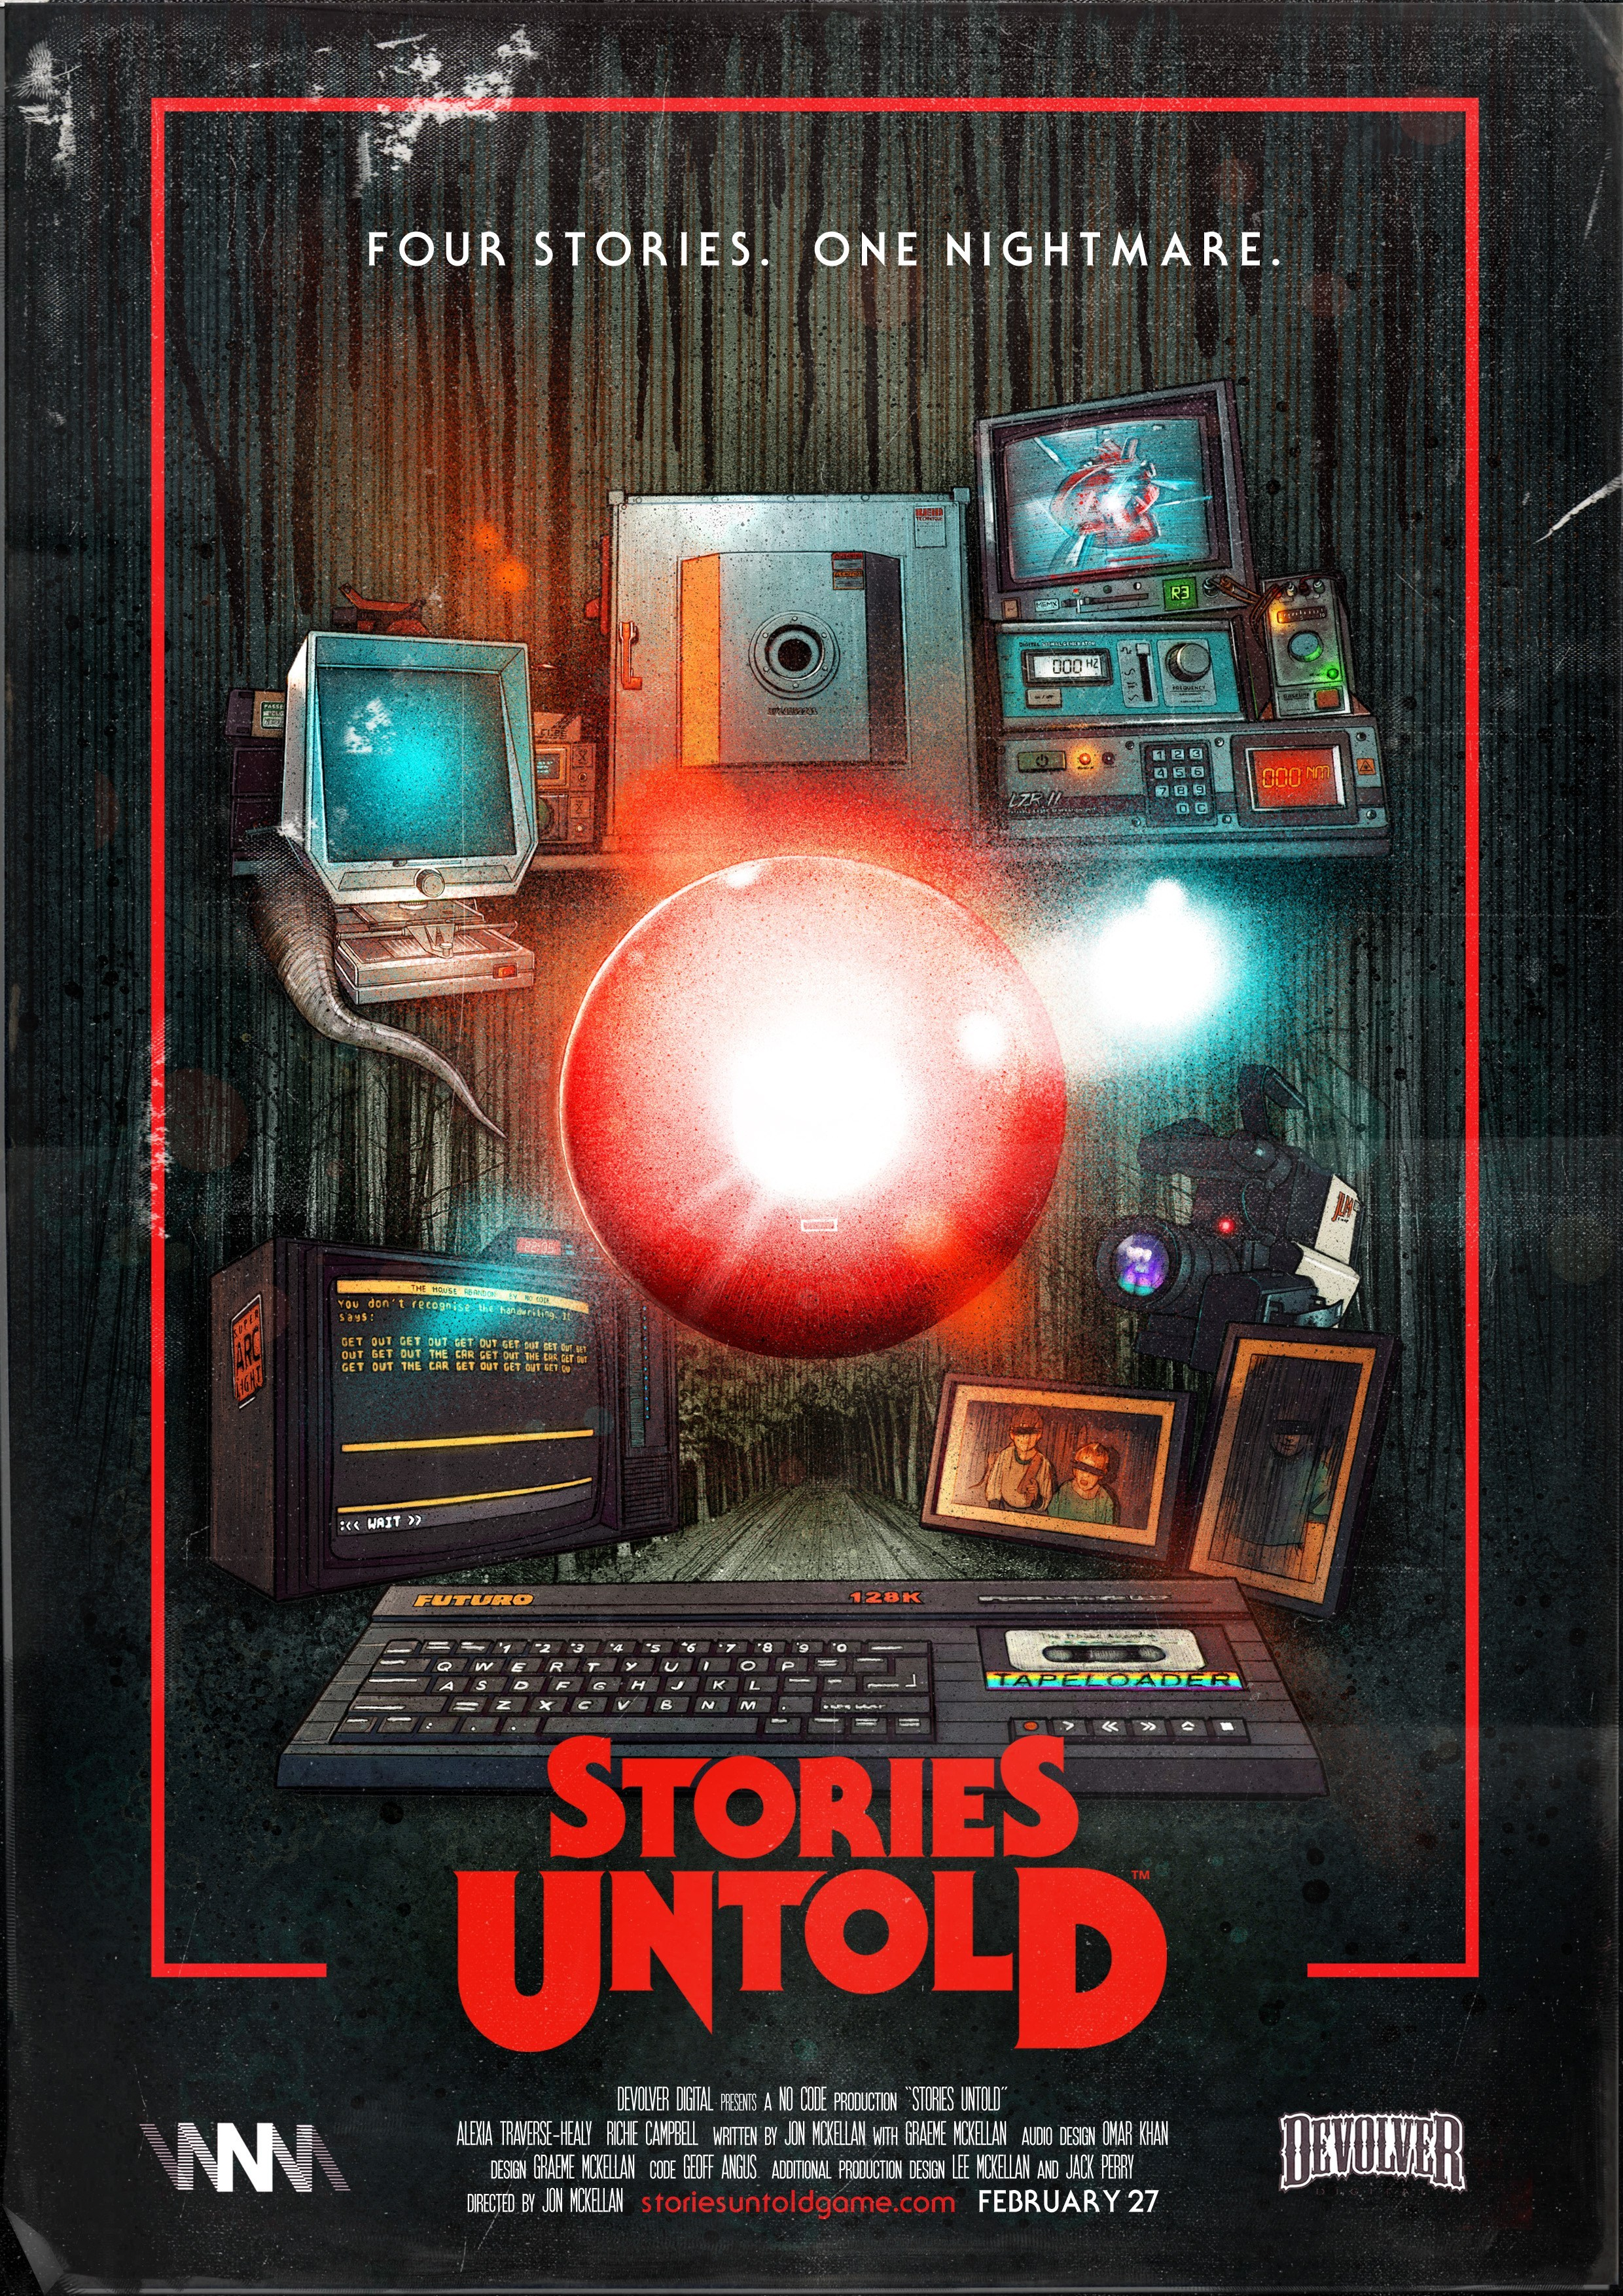 Stories Untold Poster Art. Glowing red orb in the middle of 80s retro technology